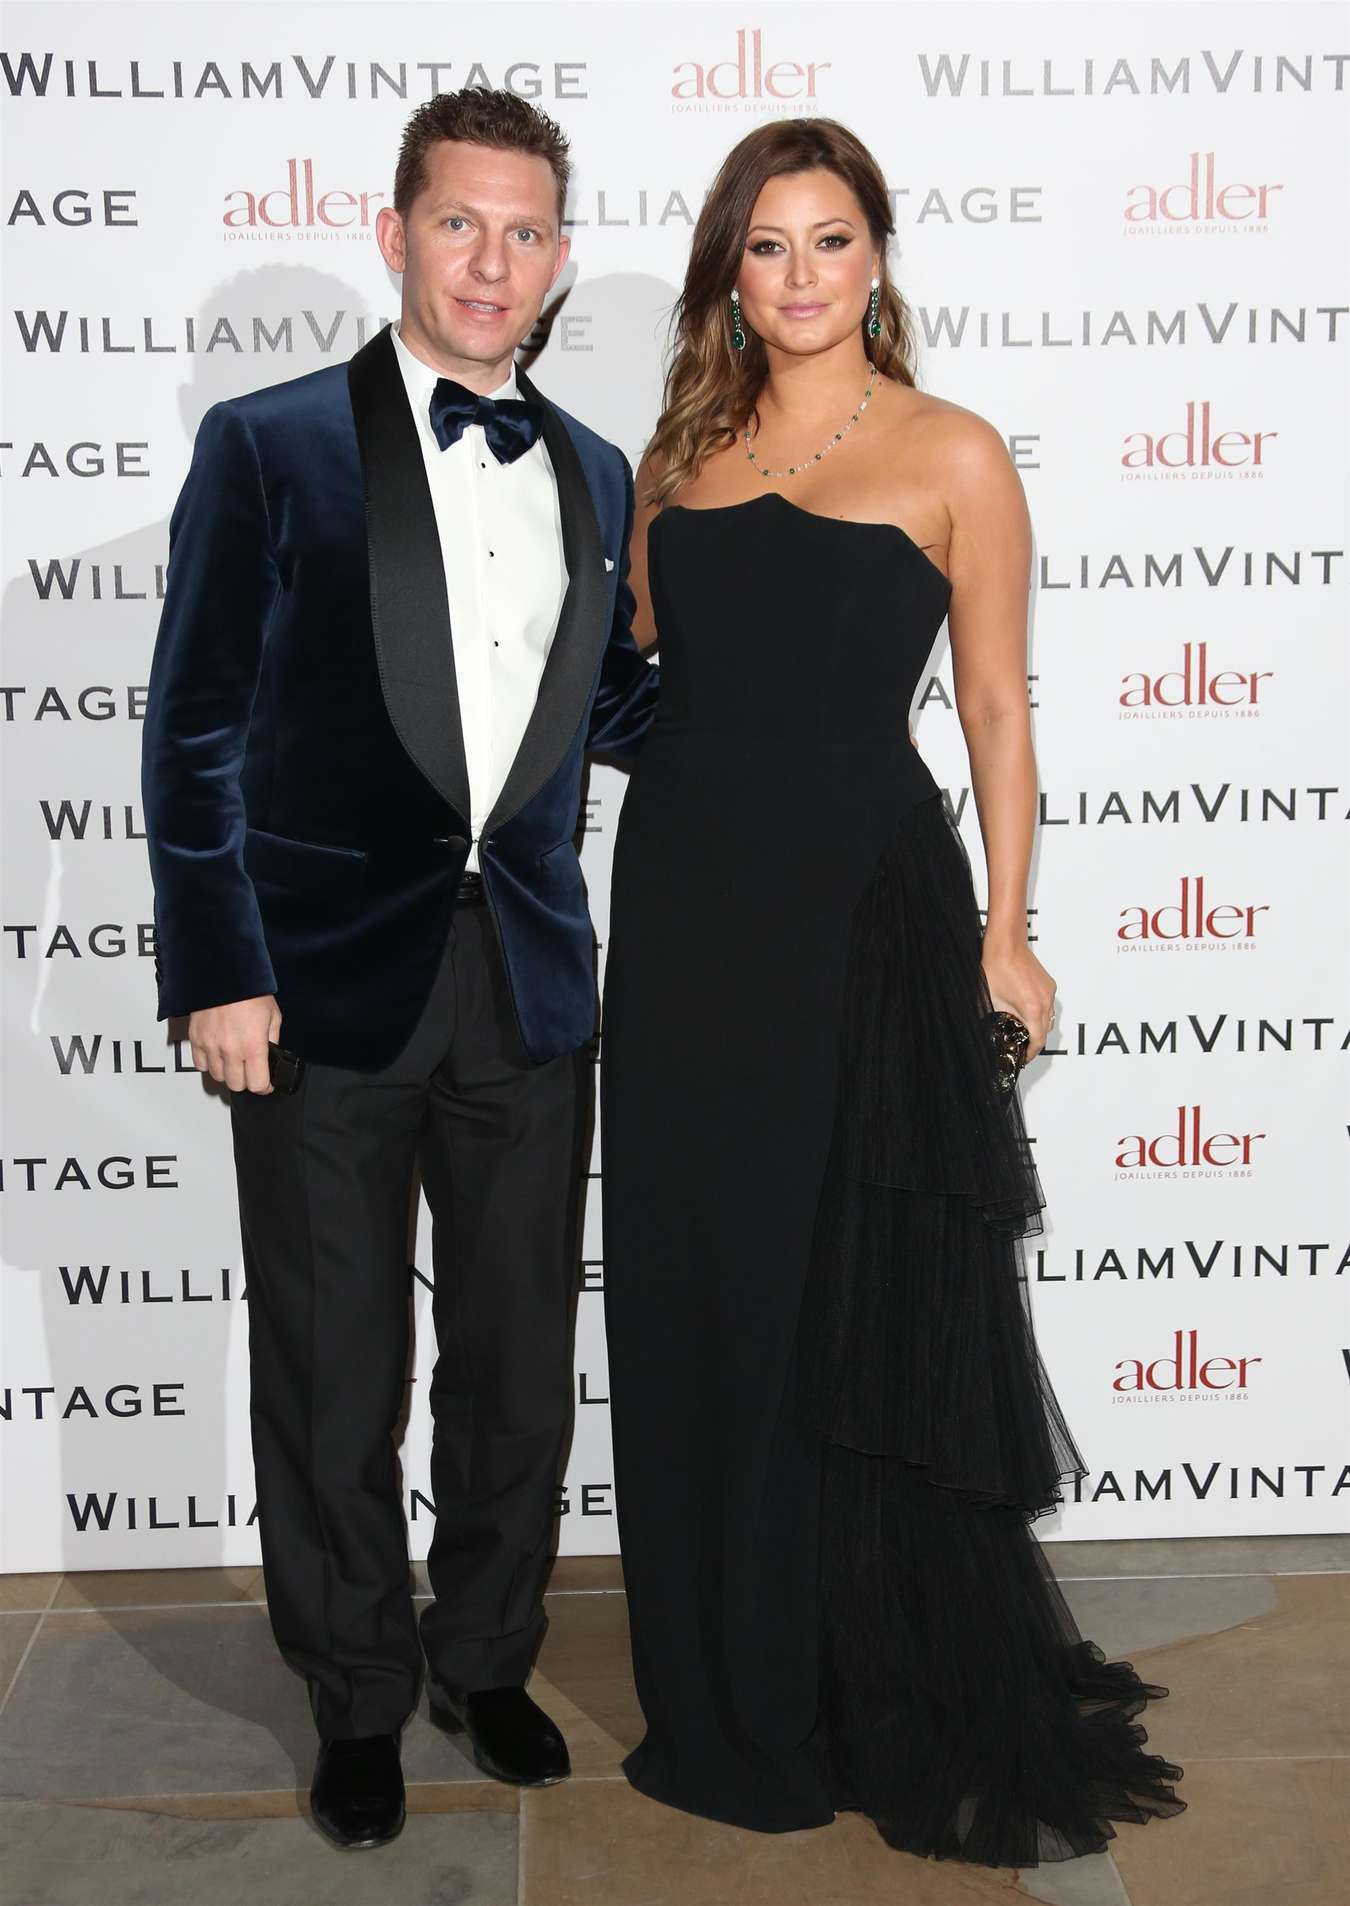 Holly Valance at WilliamVintage private dinner in London